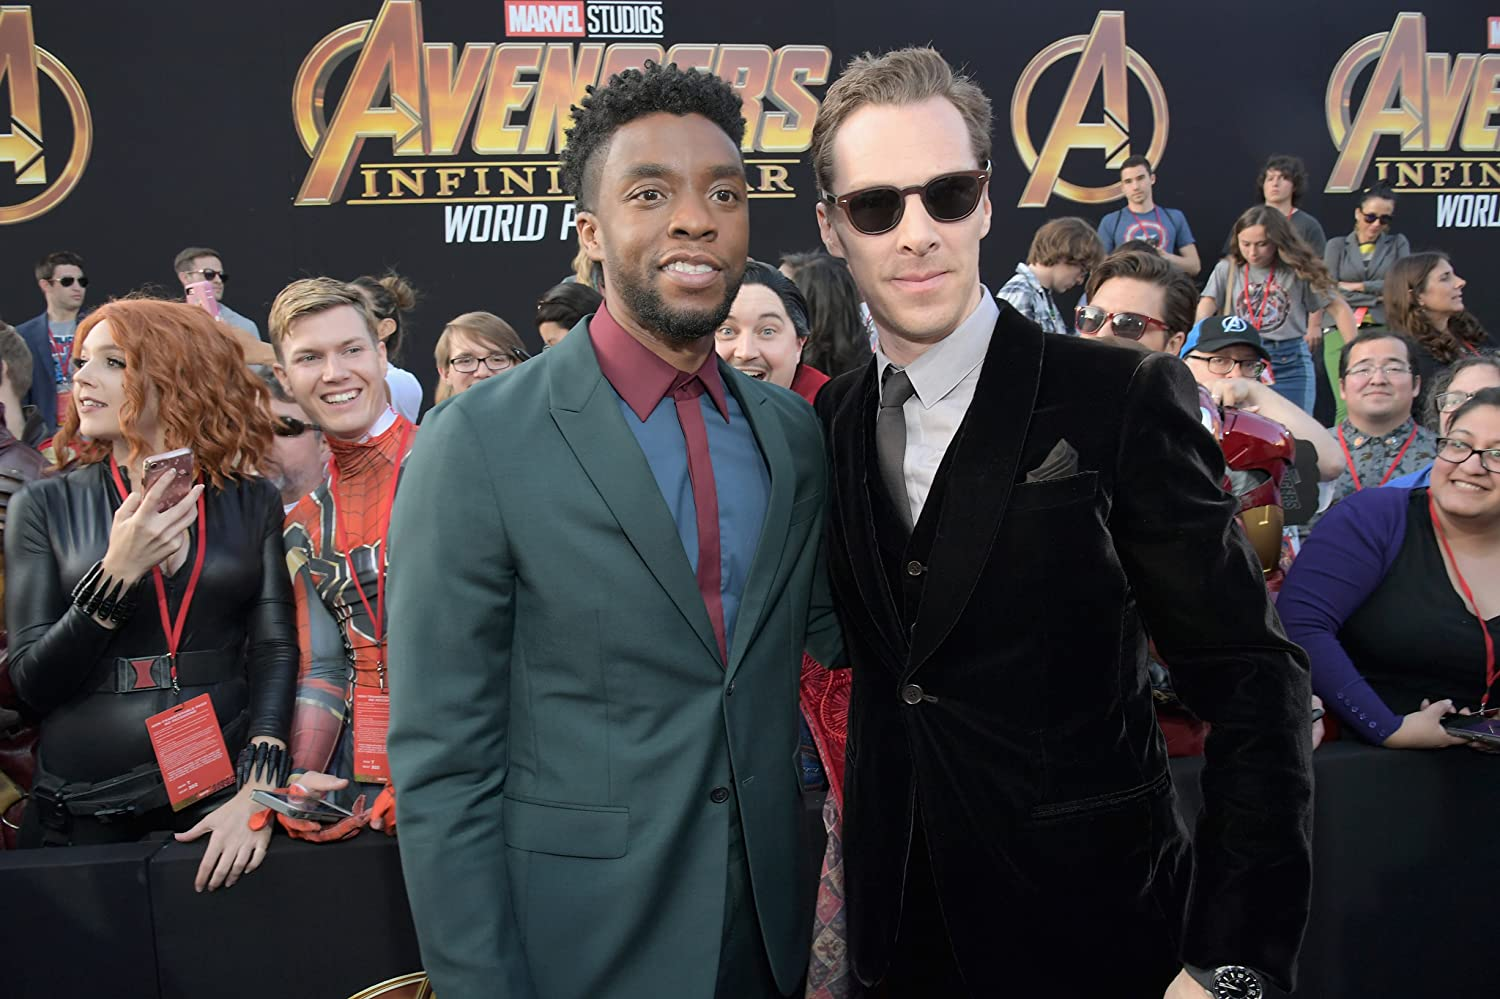 Benedict Cumberbatch and Chadwick Boseman at an event for Avengers: Infinity War (2018)